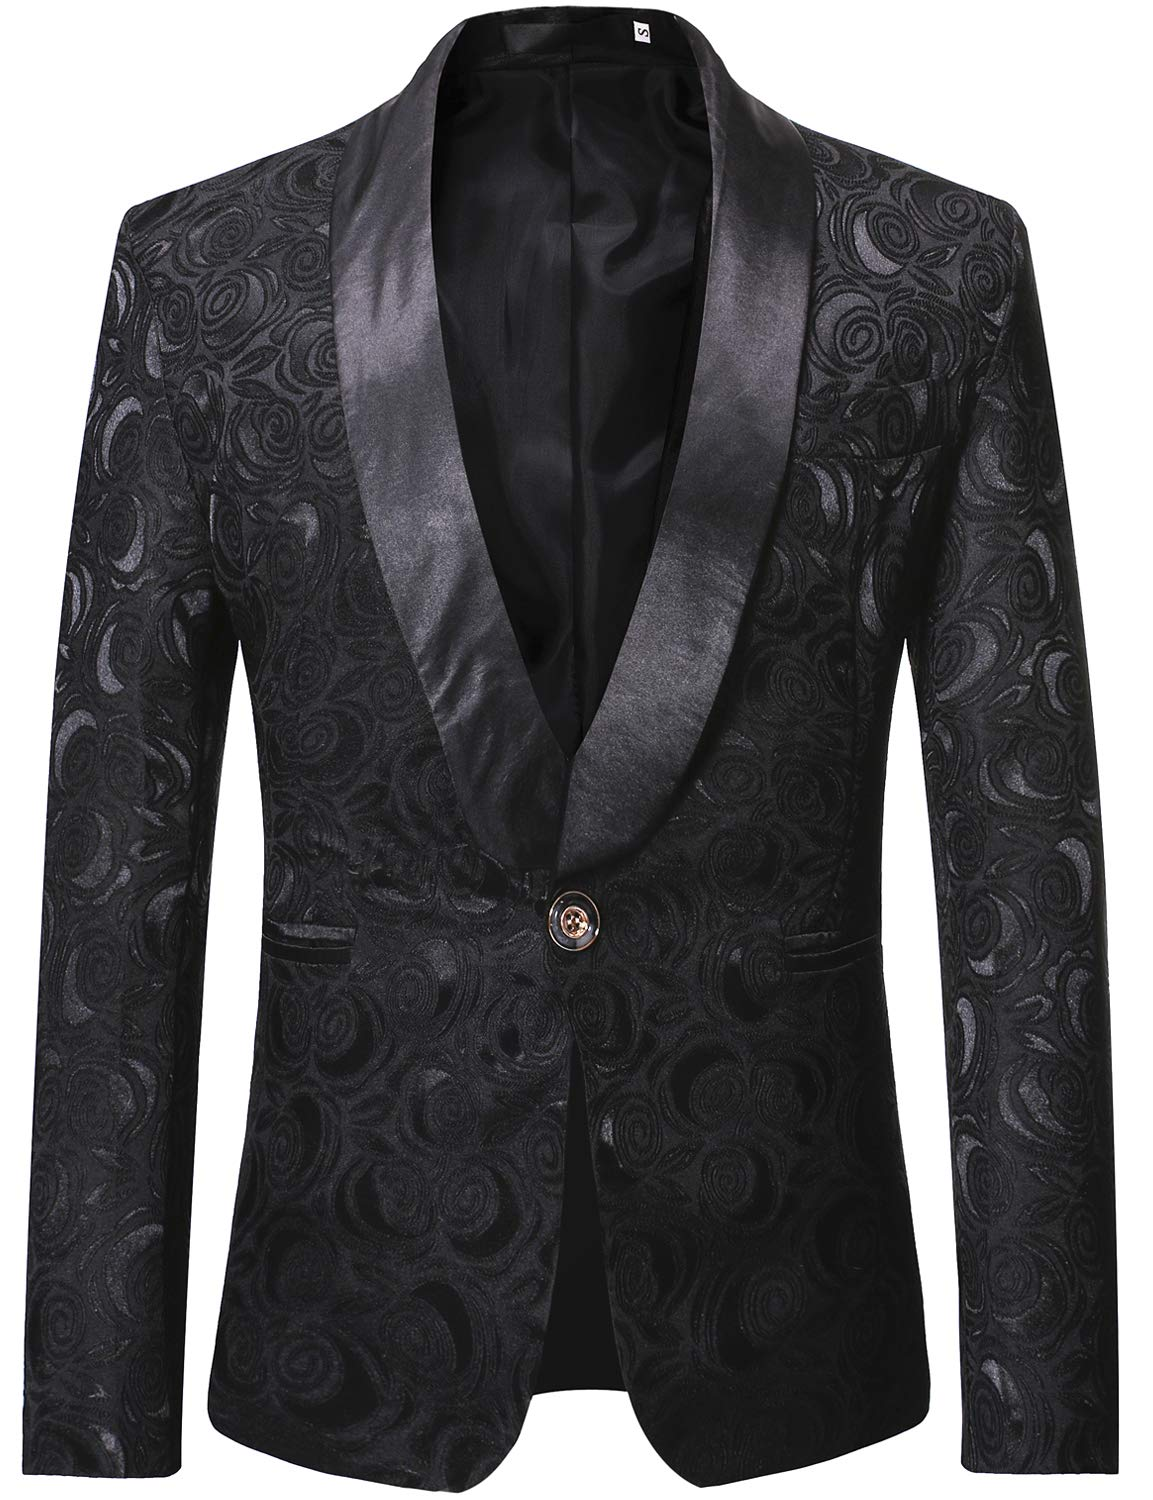 ZEROYAA Men's 1 Button Shawl Collar Wedding Dress Suit Black Rose Jacquard Dinner Jacket Prom Tuxedo ZZST02 Black Large by ZEROYAA